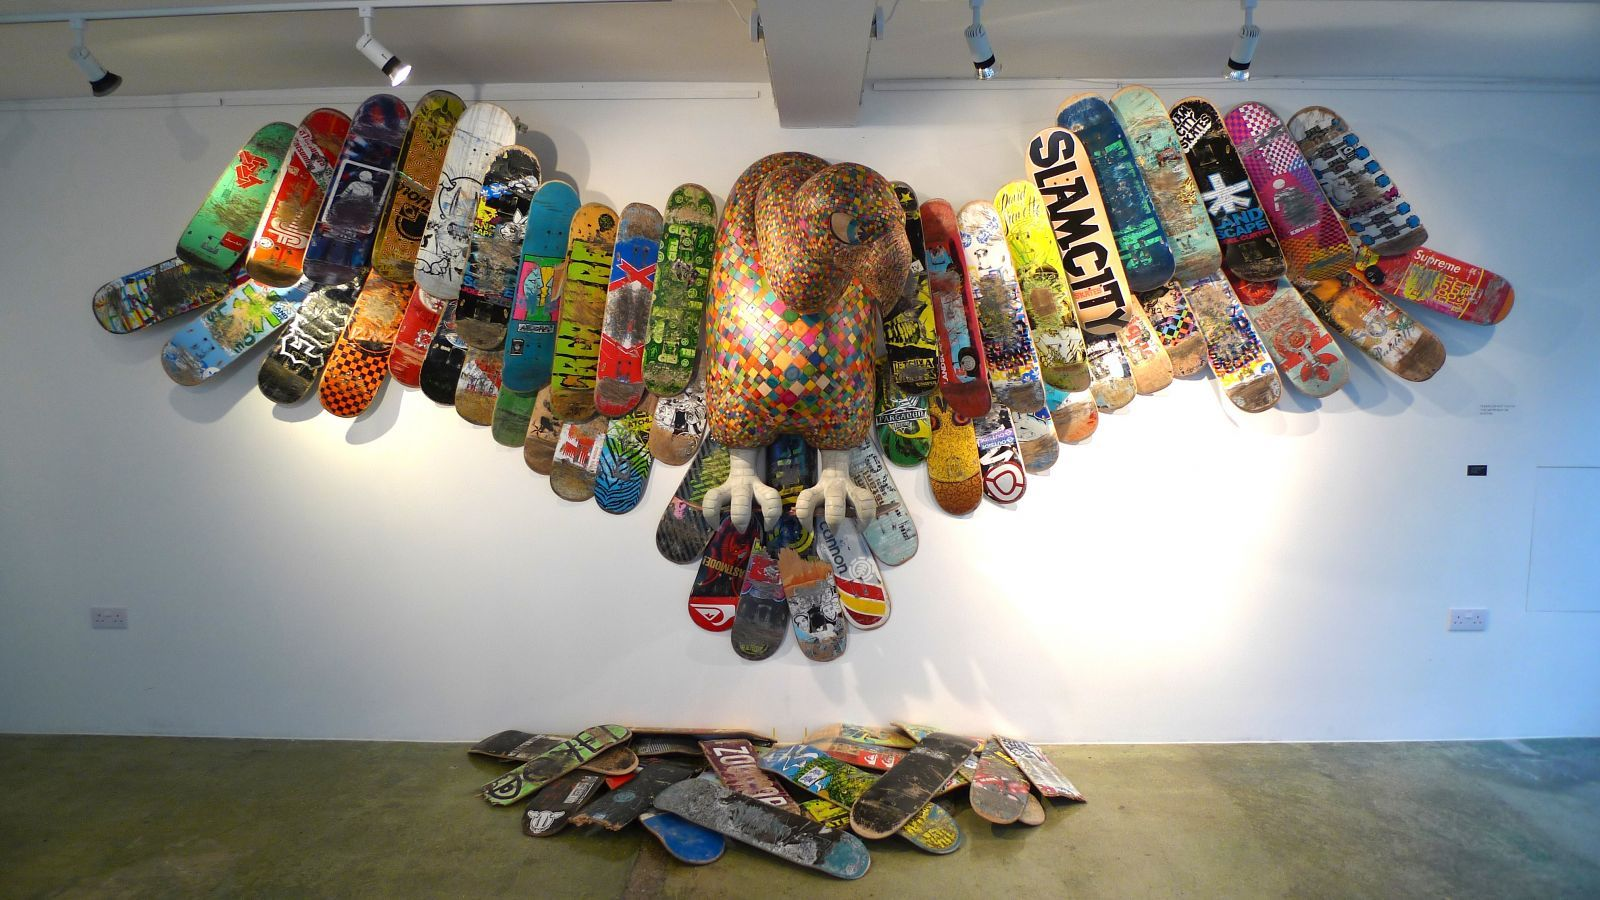 As A Skateboard Enthusiast Haroshi Found It Hard To Let His Old - Self taught woodworker turning old skateboards awesome sculptures